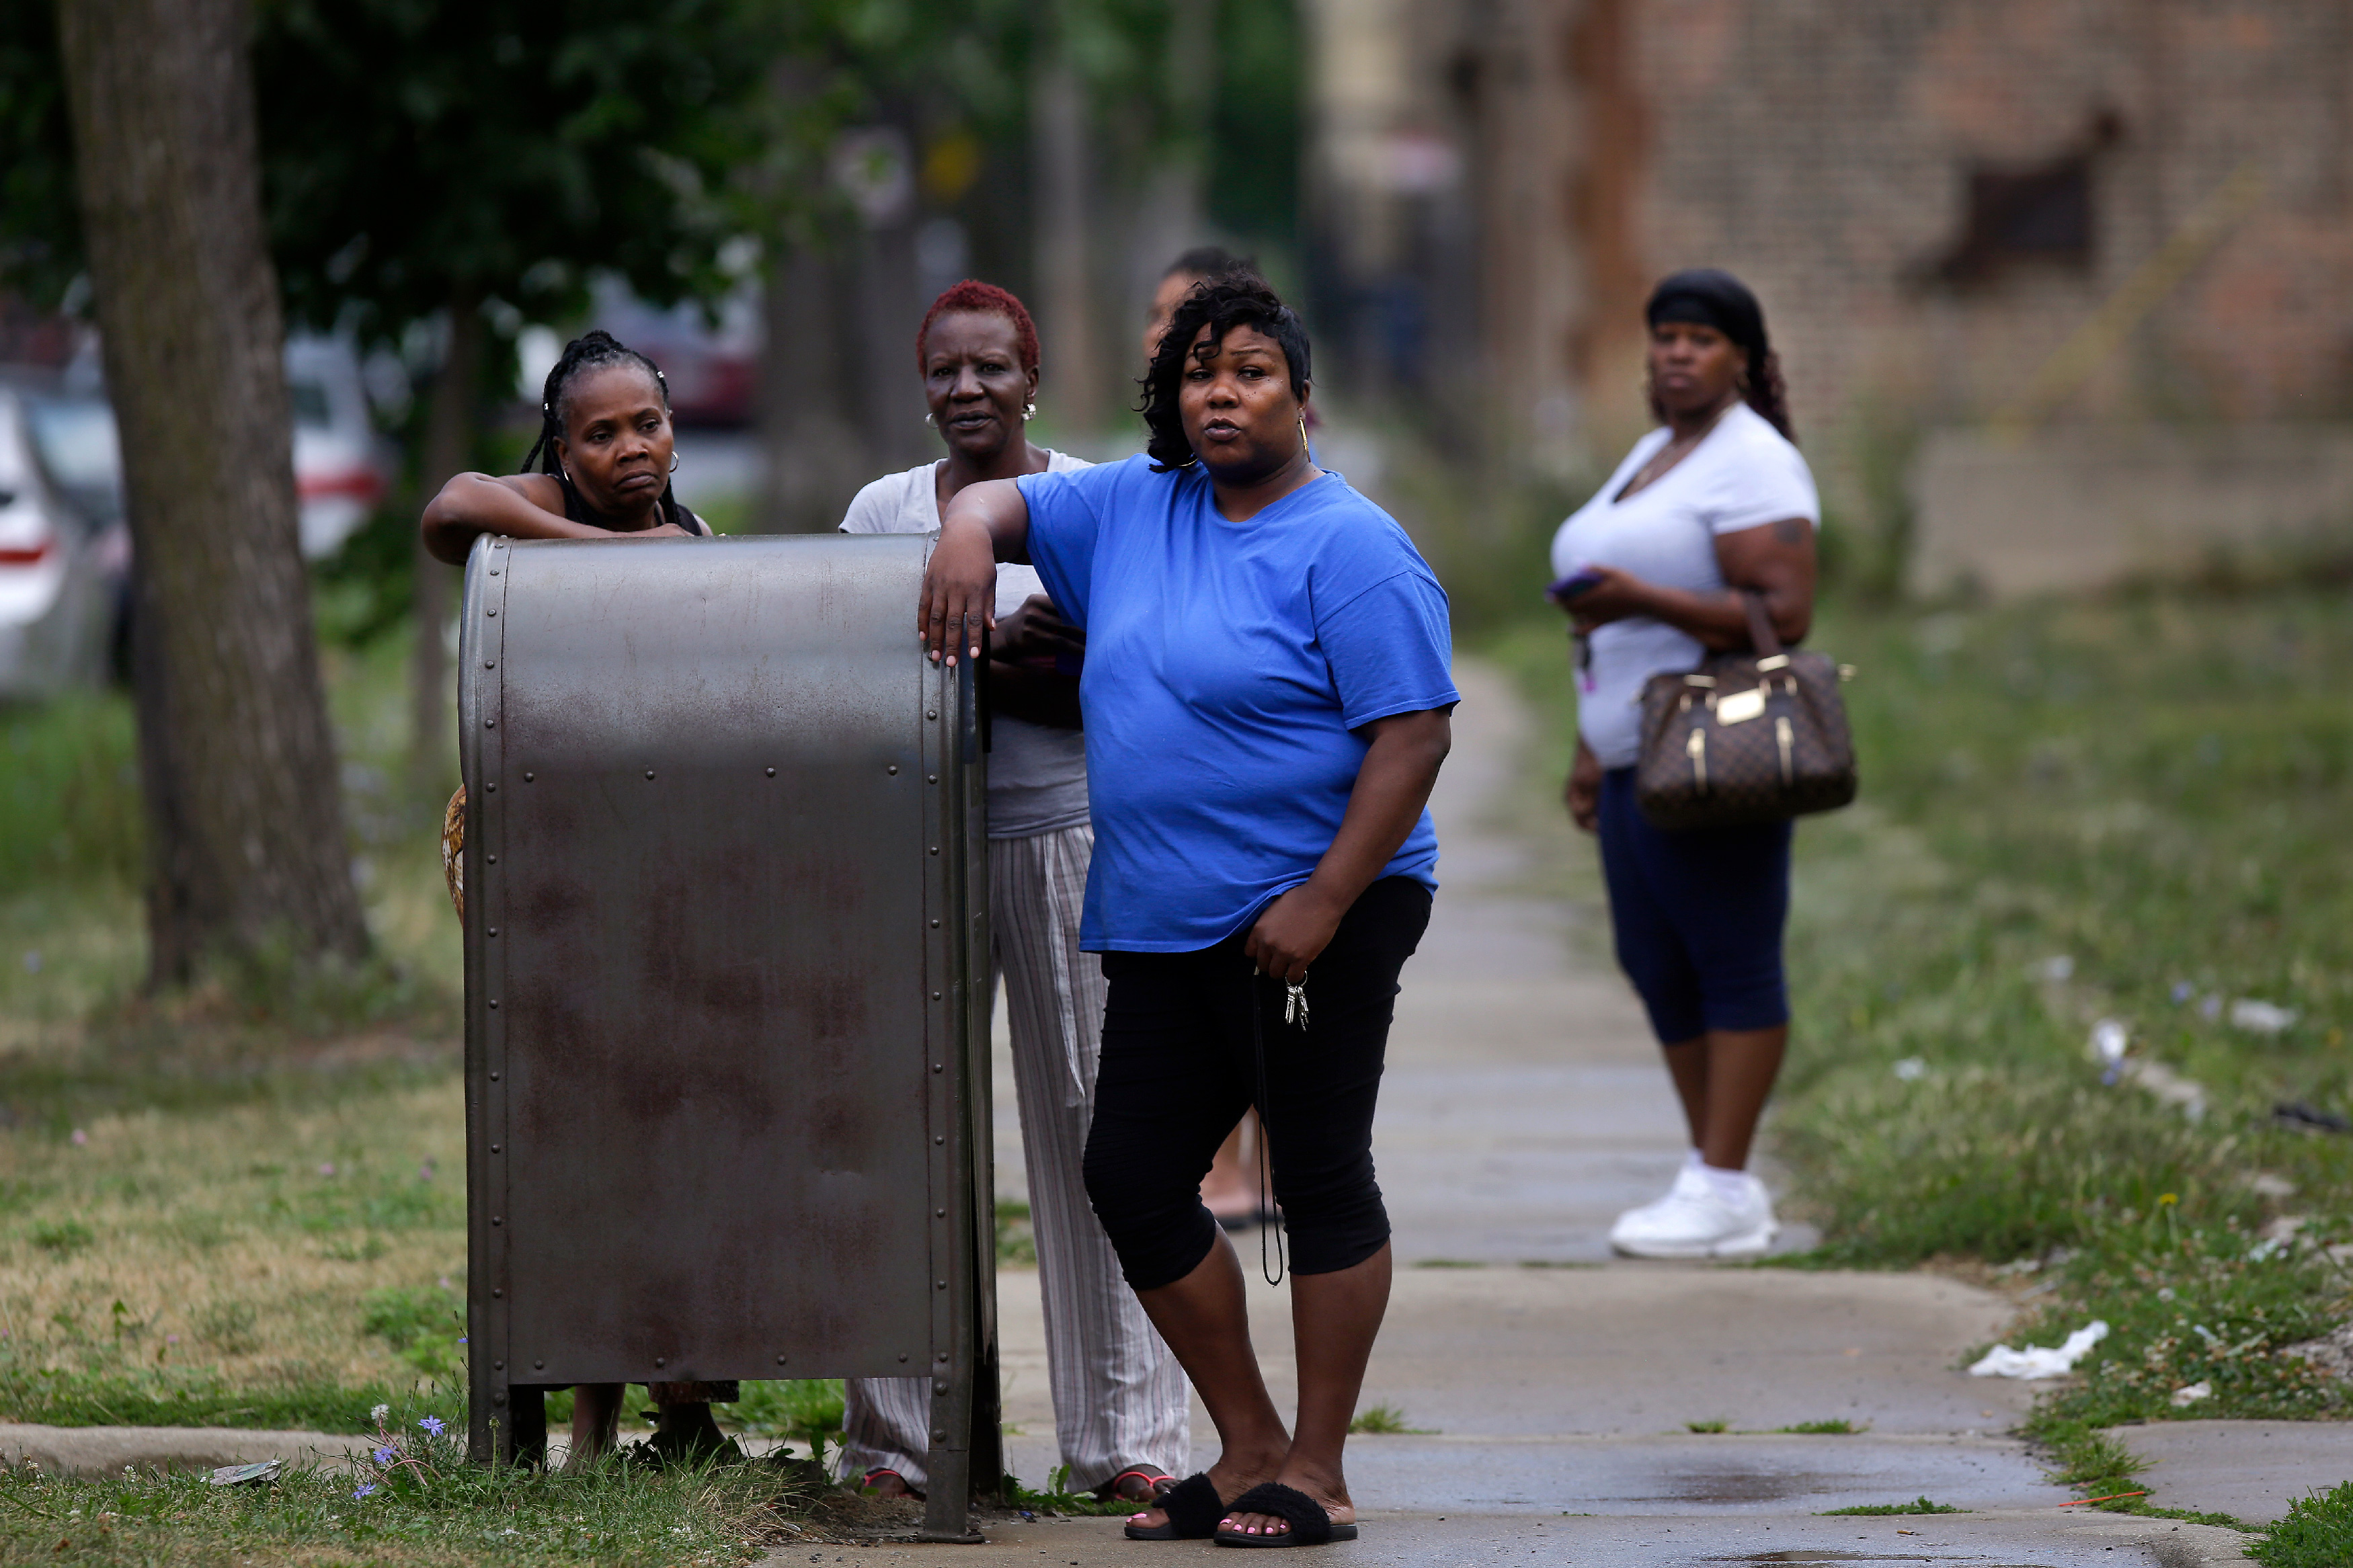 Bystanders watch as Chicago Police officers and detectives investigate a shooting where multiple people were shot on Sunday, August 5, 2018 in Chicago, Illinois. In the last 24 hours over 30 people have been shot and at least 2 killed across Chicago including five mass shootings, where four or more victims were shot at one location. (Photo by Joshua Lott/Getty Images)